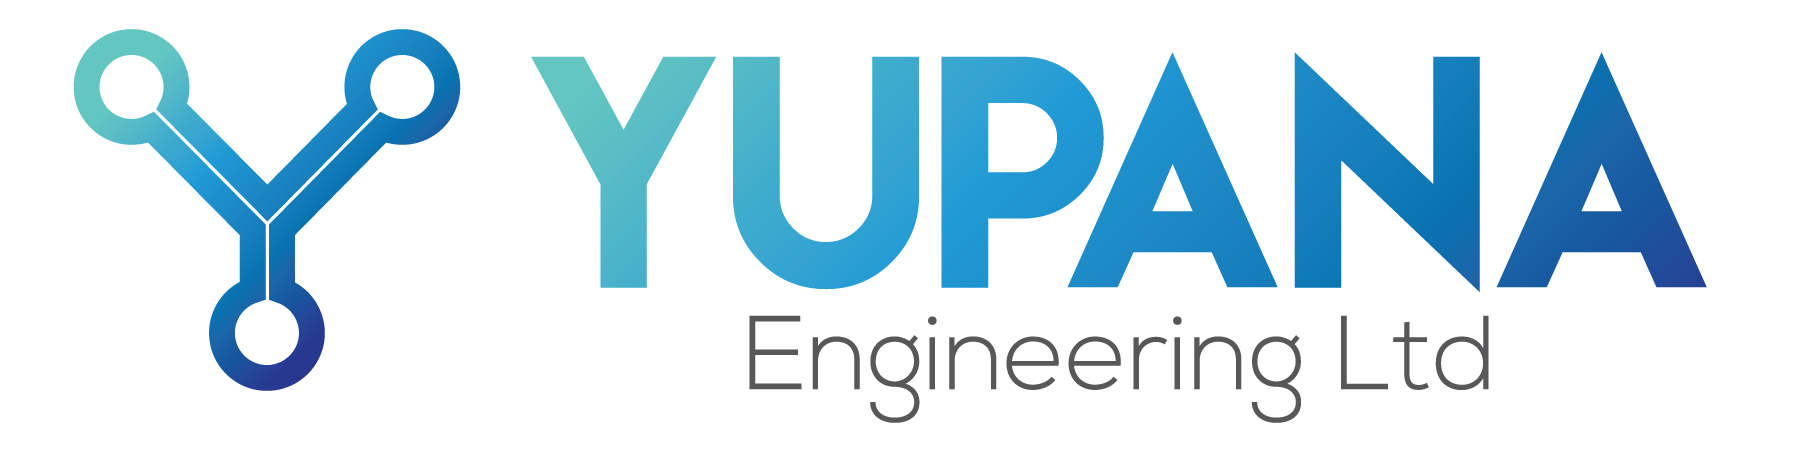 Freelance Embedded Software Engineer for Hire  - Yupana Engineering Ltd